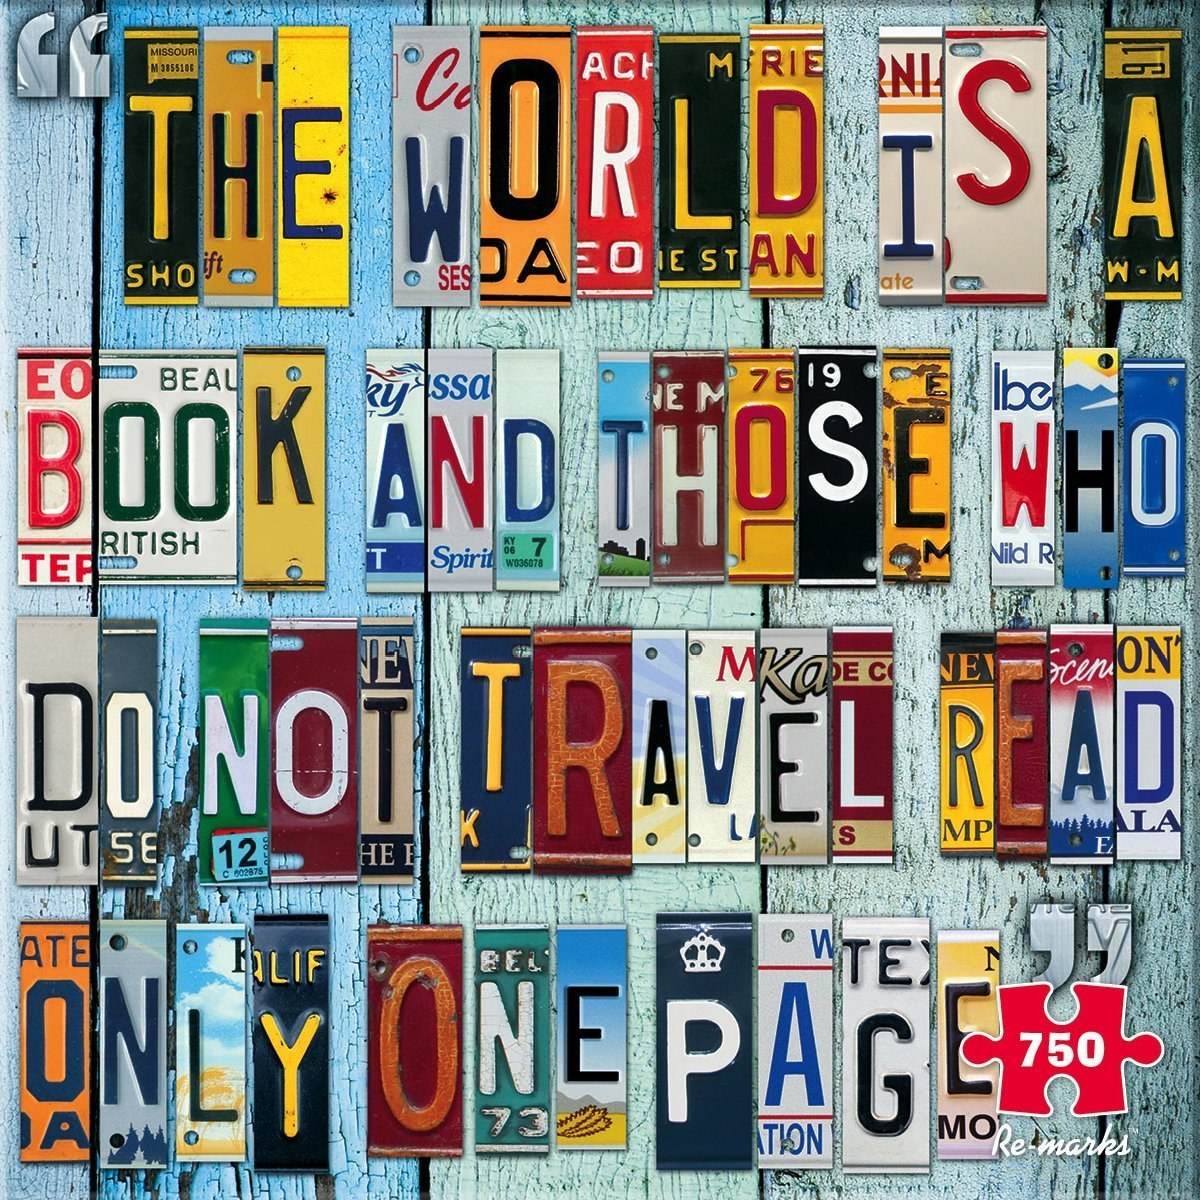 License Plate - 750pc Jigsaw Puzzle By Re-marks  			  					NEW